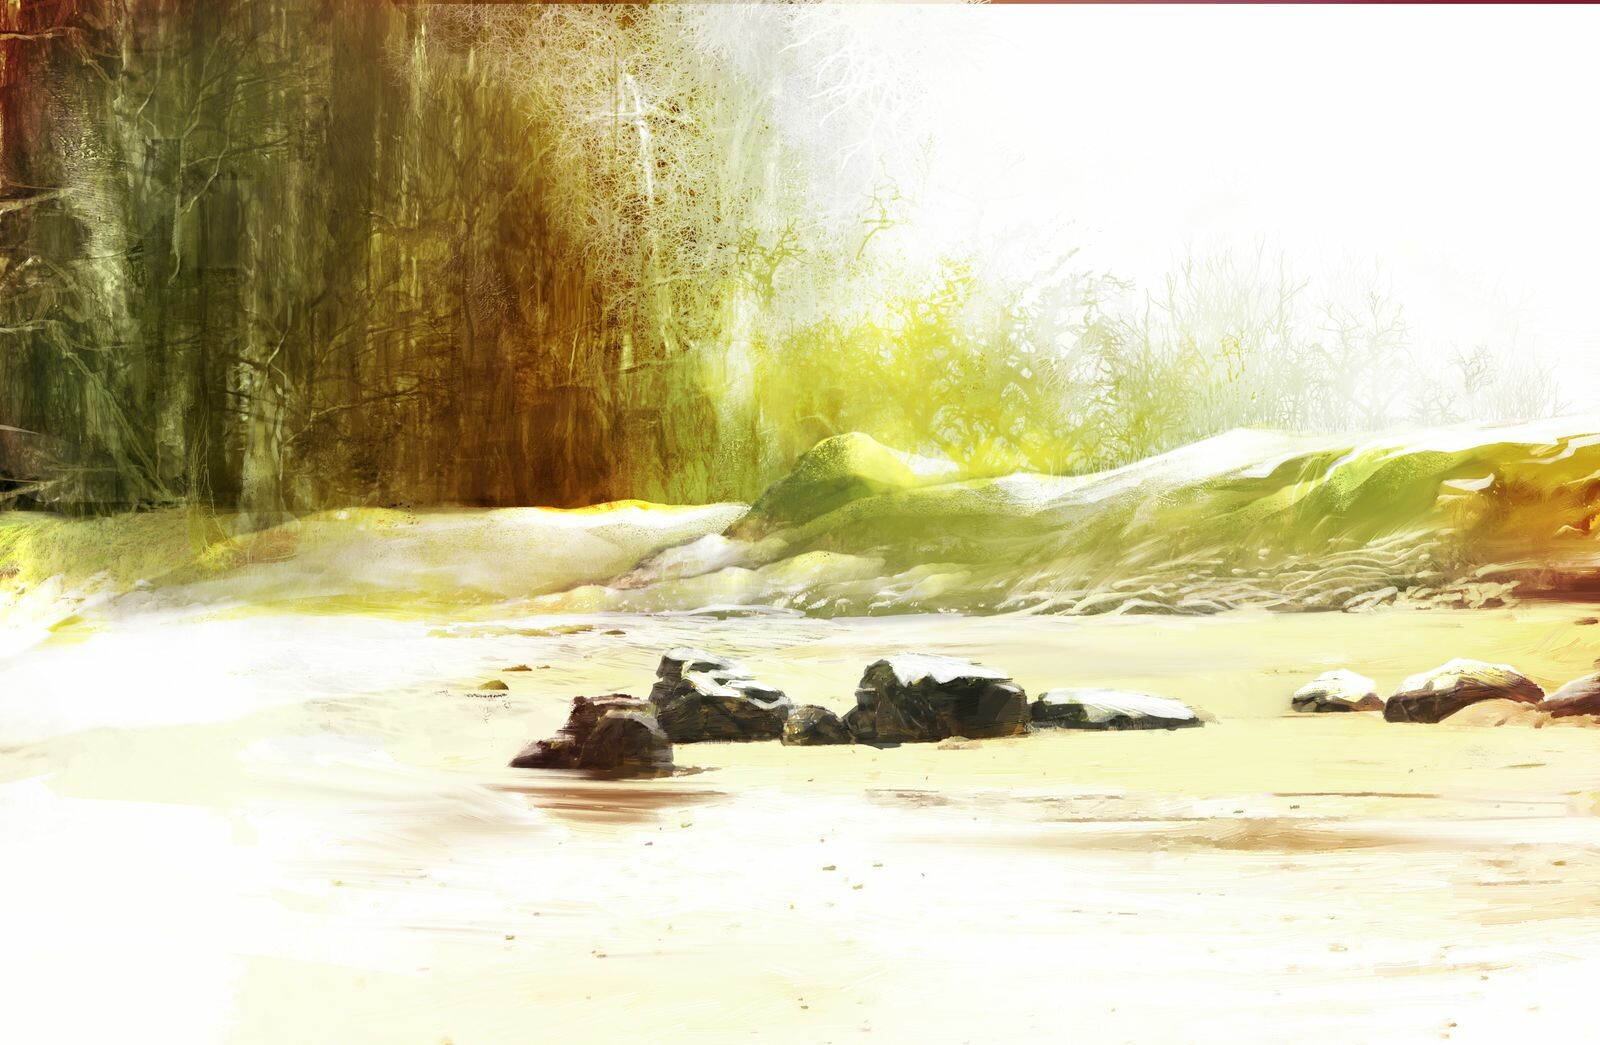 The beach - Environment sketch